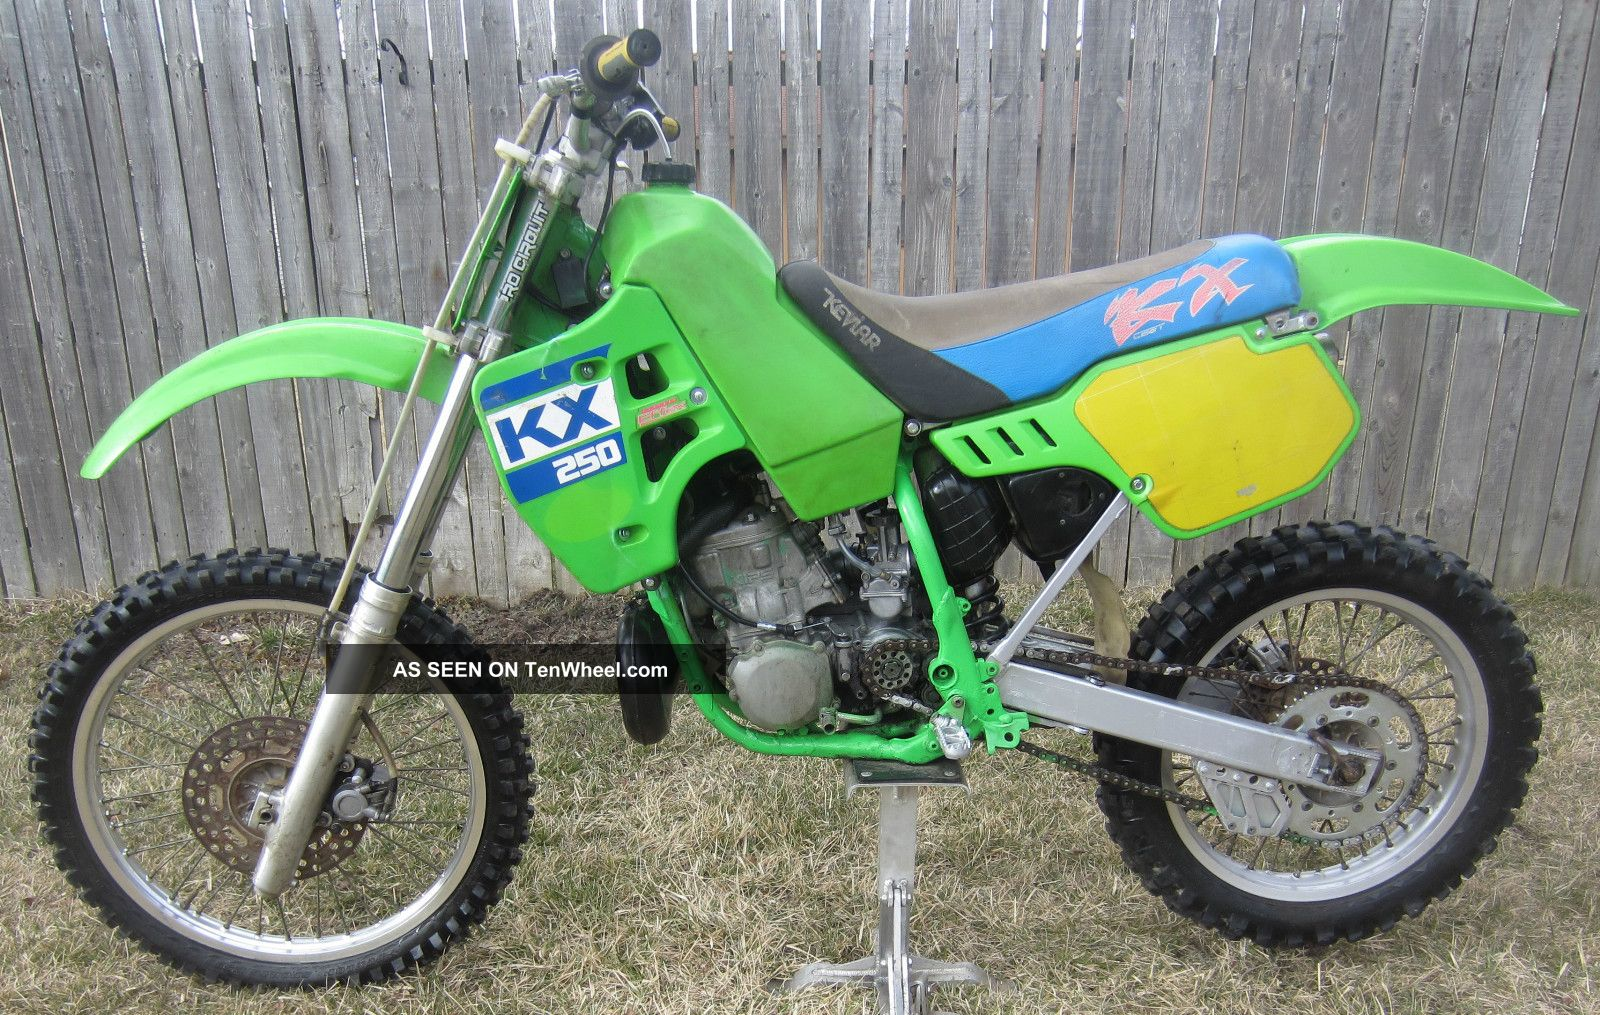 1988 kawasaki kx250 kx 250 motocross vintage dirt bike. Black Bedroom Furniture Sets. Home Design Ideas